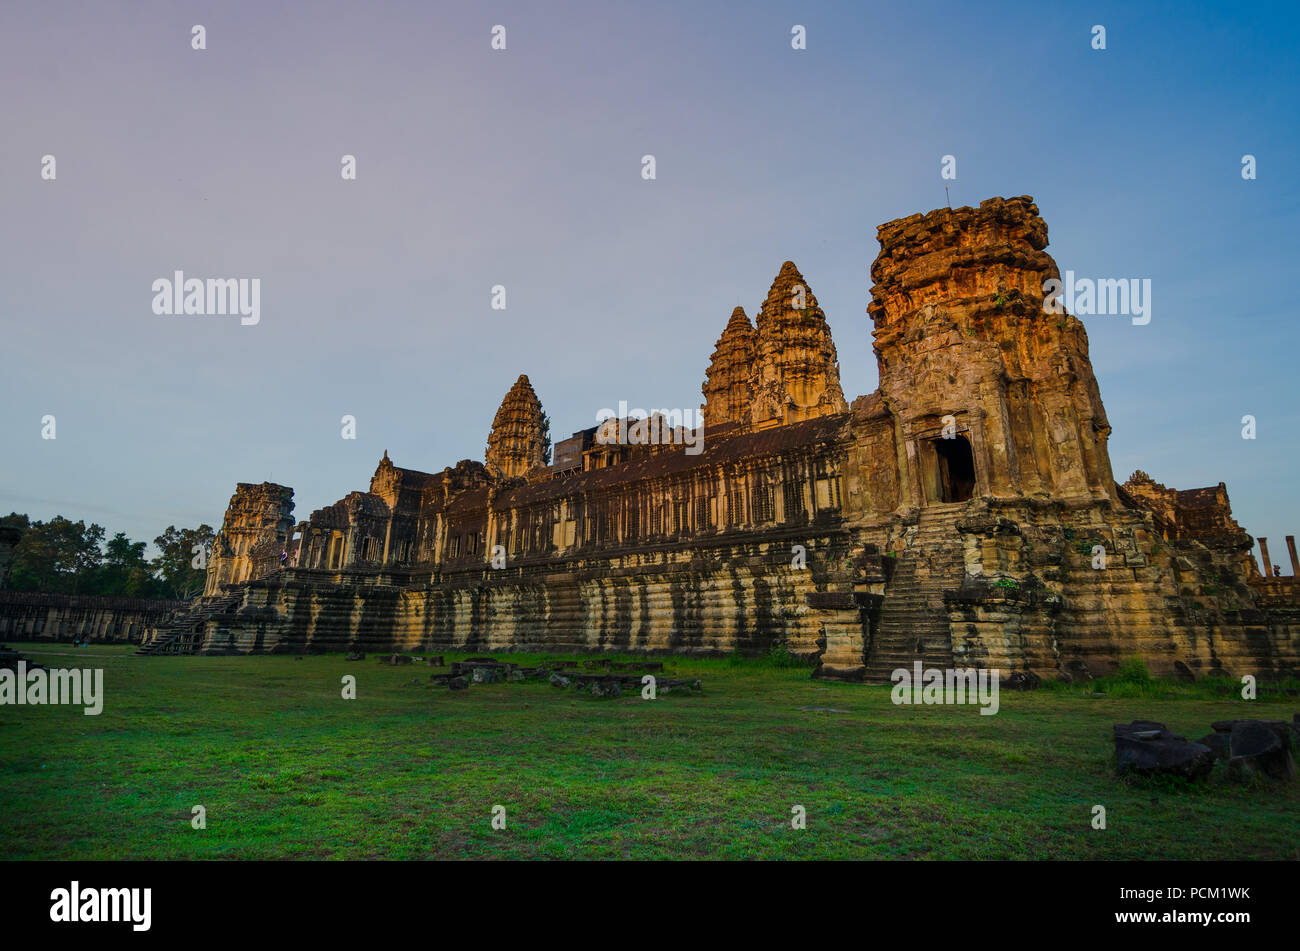 Angkor Wat temple, from western face, at sunrise. Siem Reap, Cambodia. - Stock Image